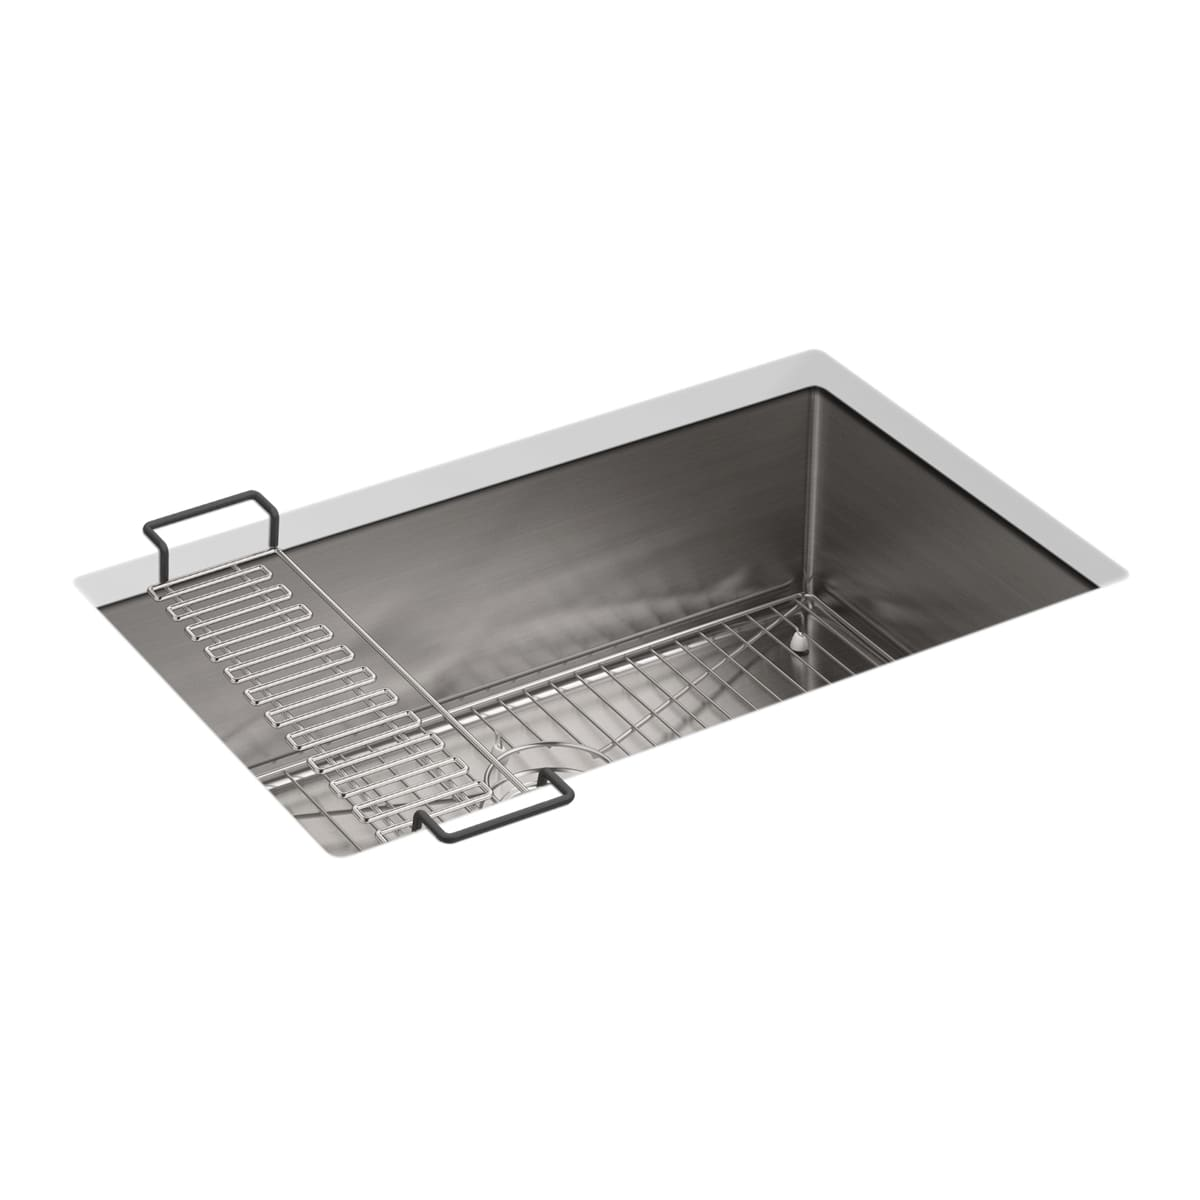 Kohler K 5409 Na Stainless Steel Strive 29 Single Basin Undermount 16 Gauge Stainless Steel Kitchen Sink With Silentshield With Basin Rack And Utility Shelf Faucetdirect Com